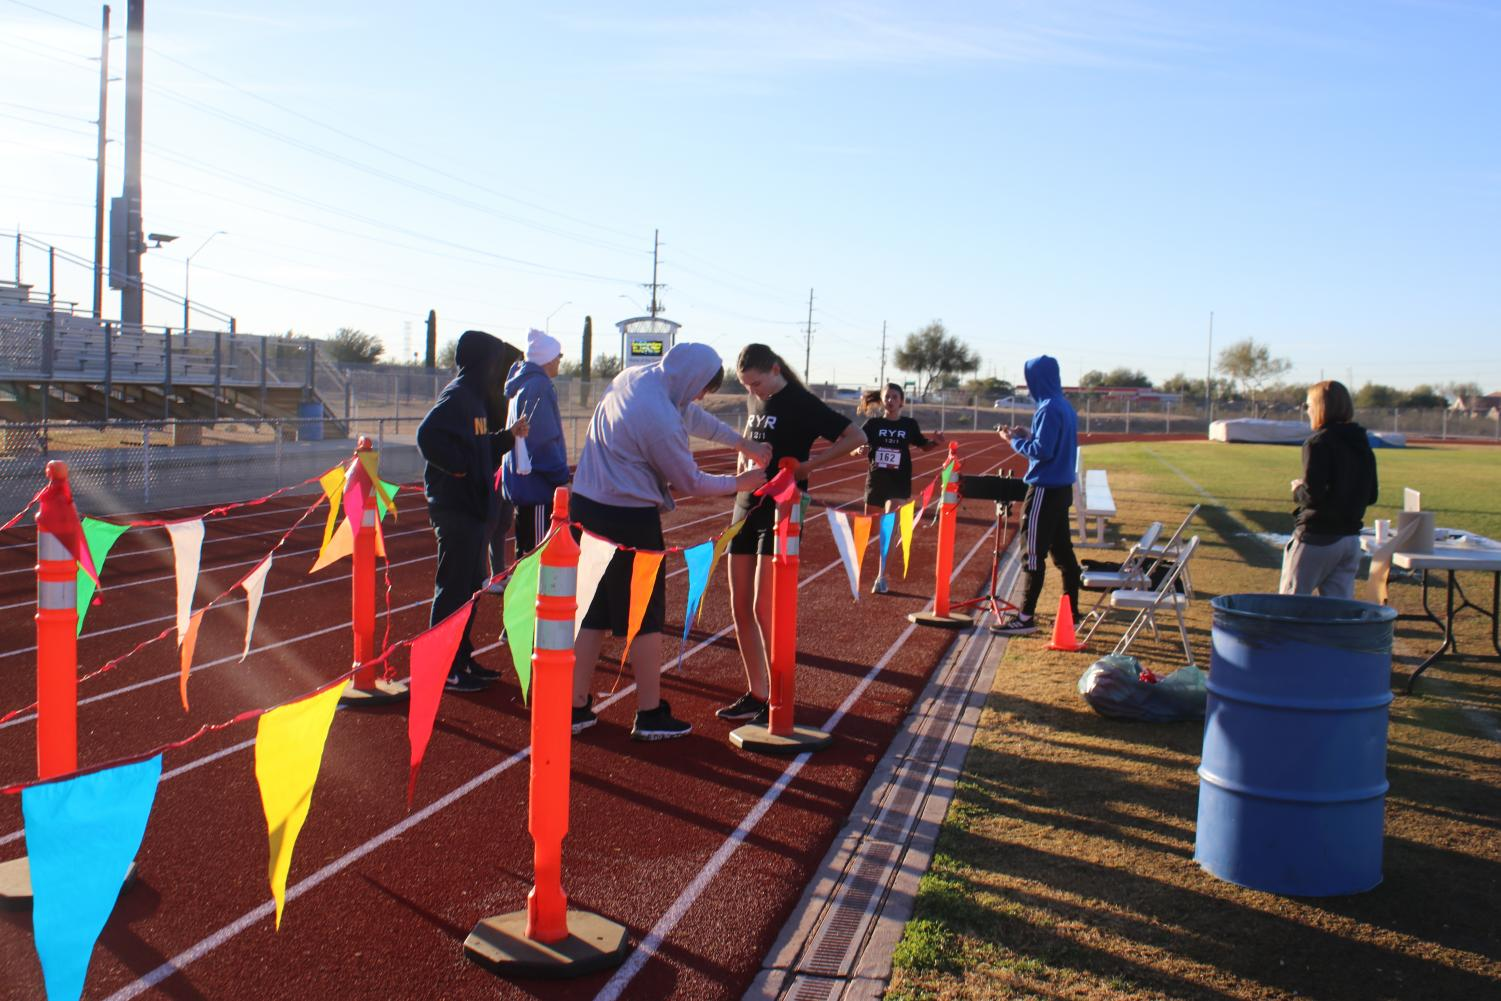 The first and second place girls 5k racers cross the finish line after a successful race.